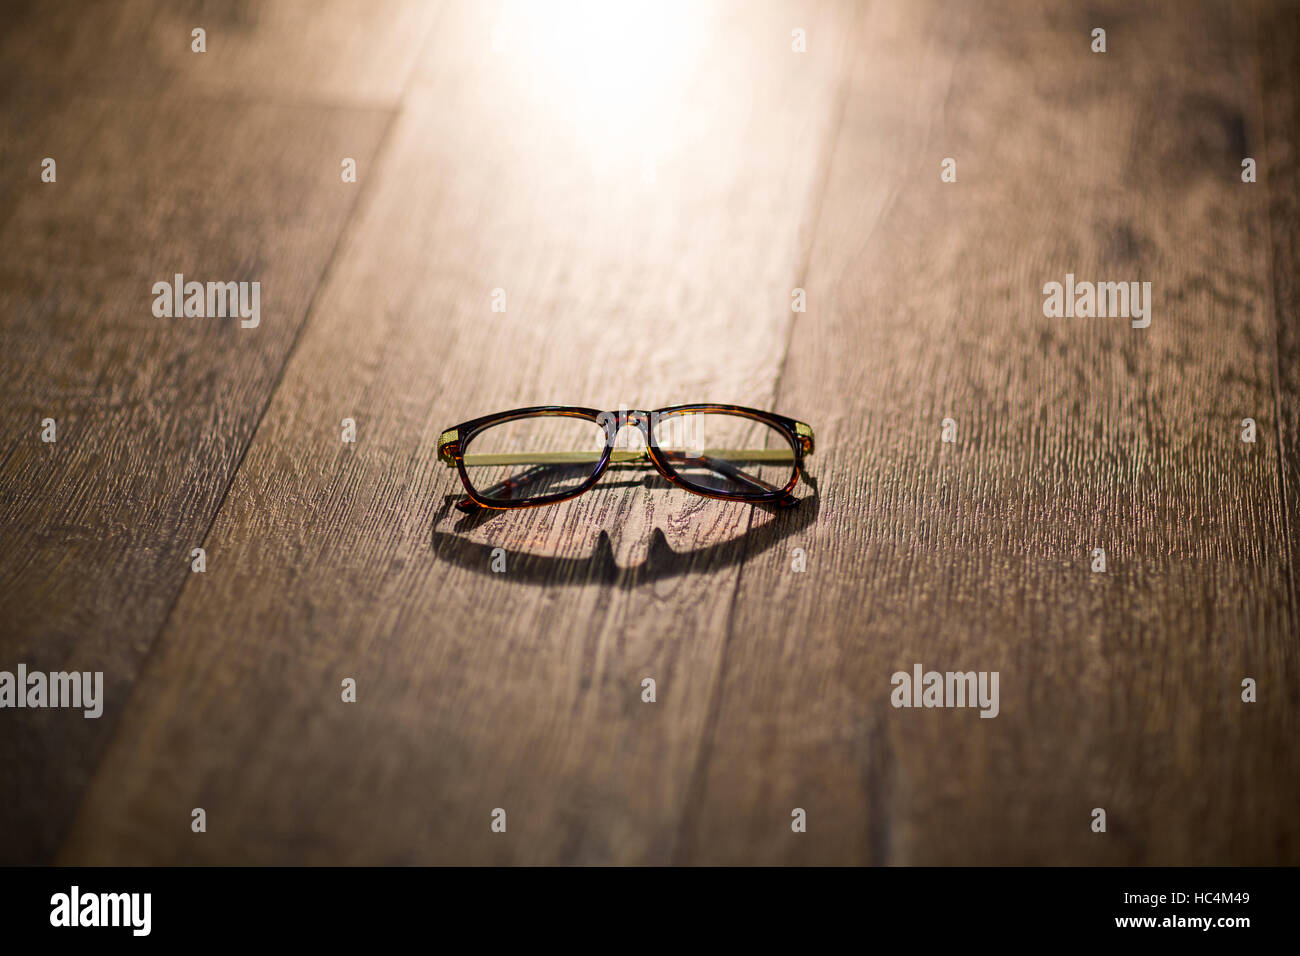 Spectacles on wooden table - Stock Image